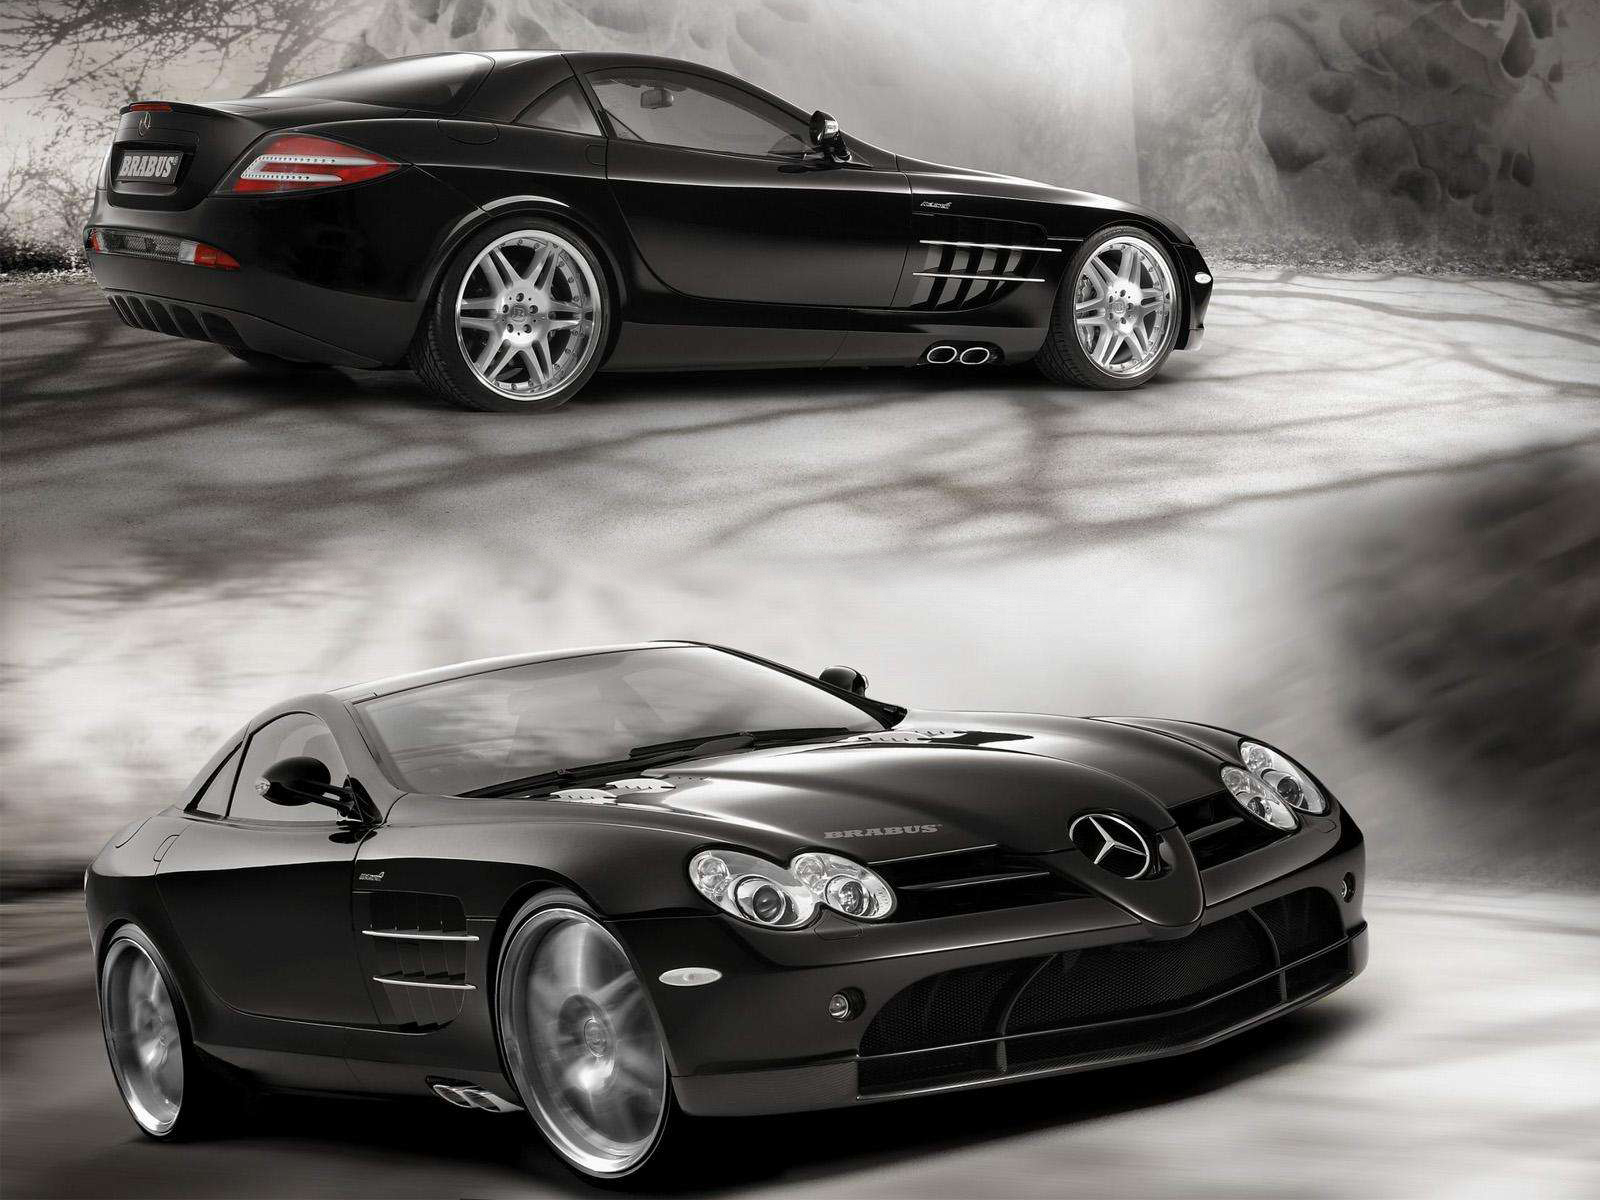 Mercedes-benz slr photo - 4